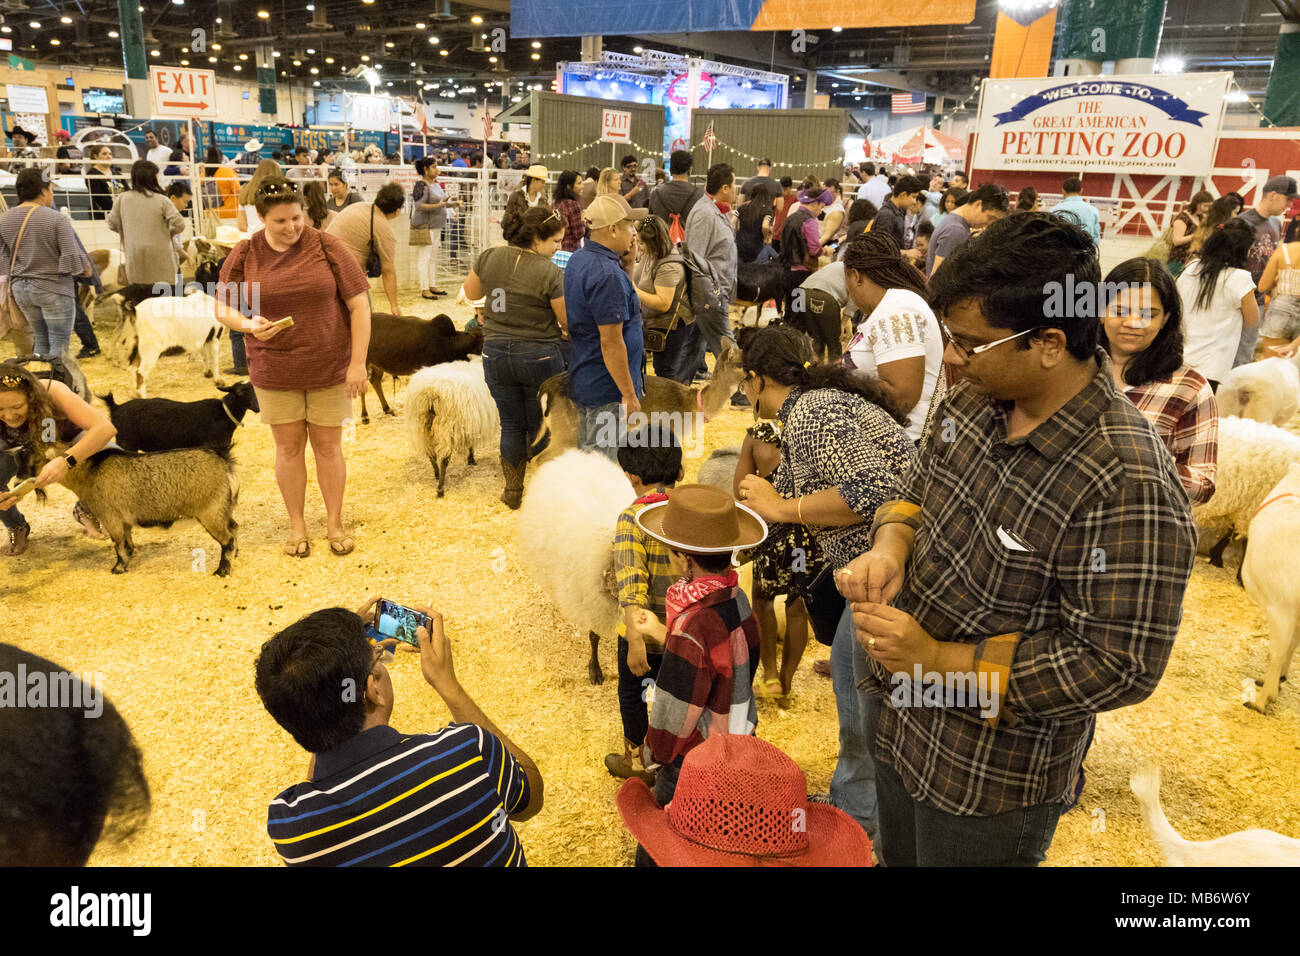 Parents, young children and animals in the Petting Zoo, Houston Livestock Show and Rodeo, Houston, Texas USA - Stock Image